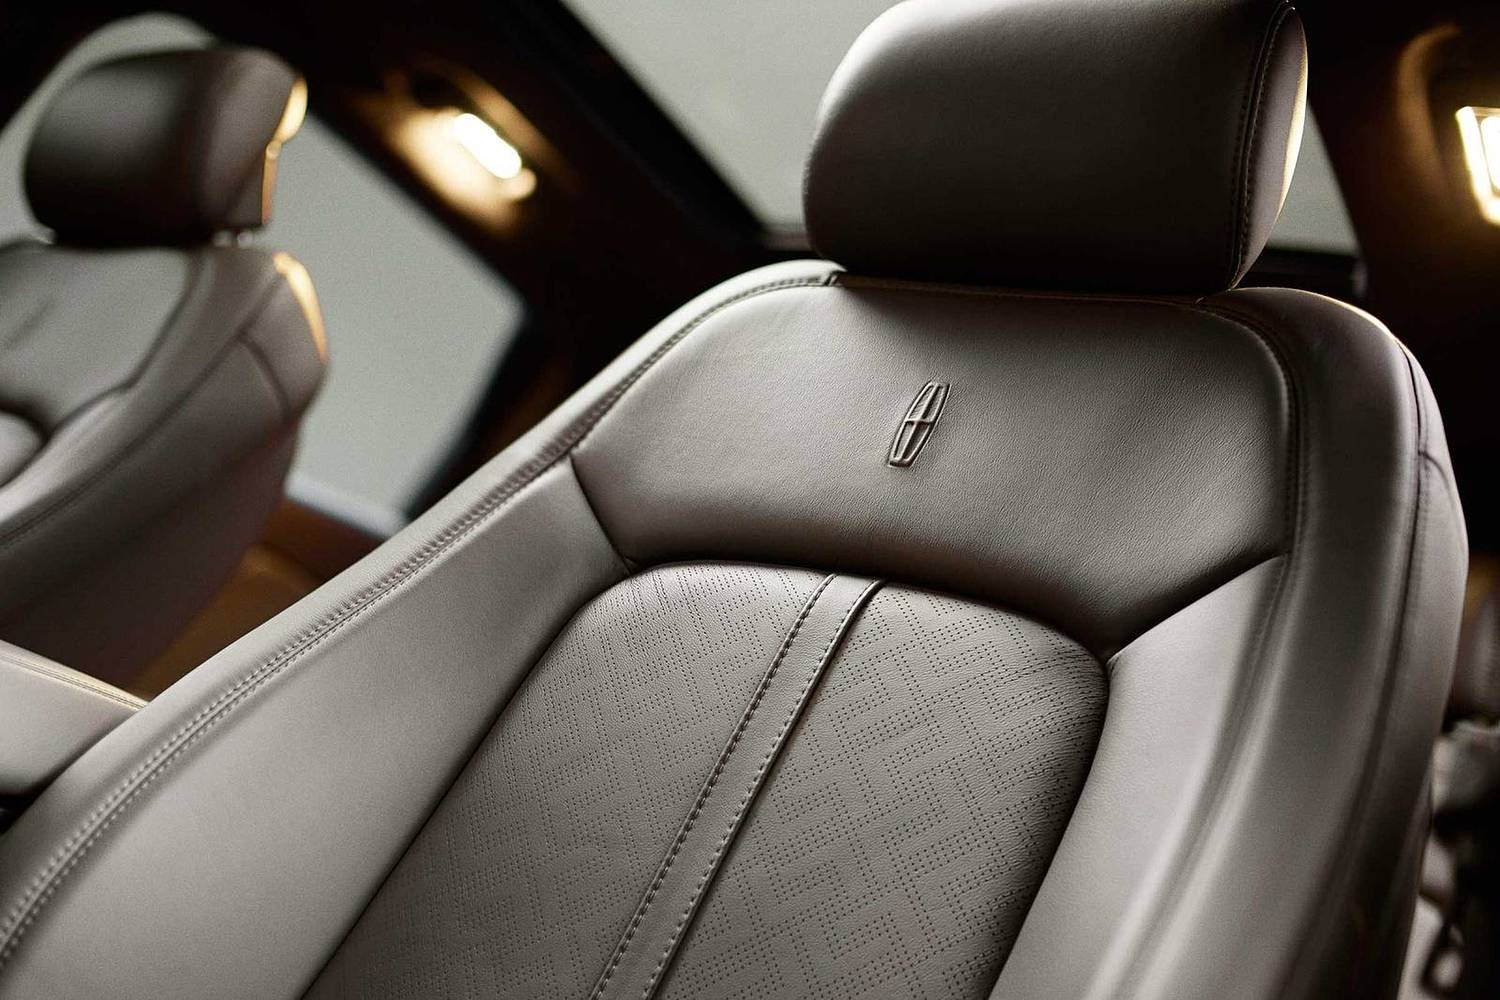 Lincoln MKX Black Label 4dr SUV Interior Detail. Muse Theme Shown. (2017 model year shown)